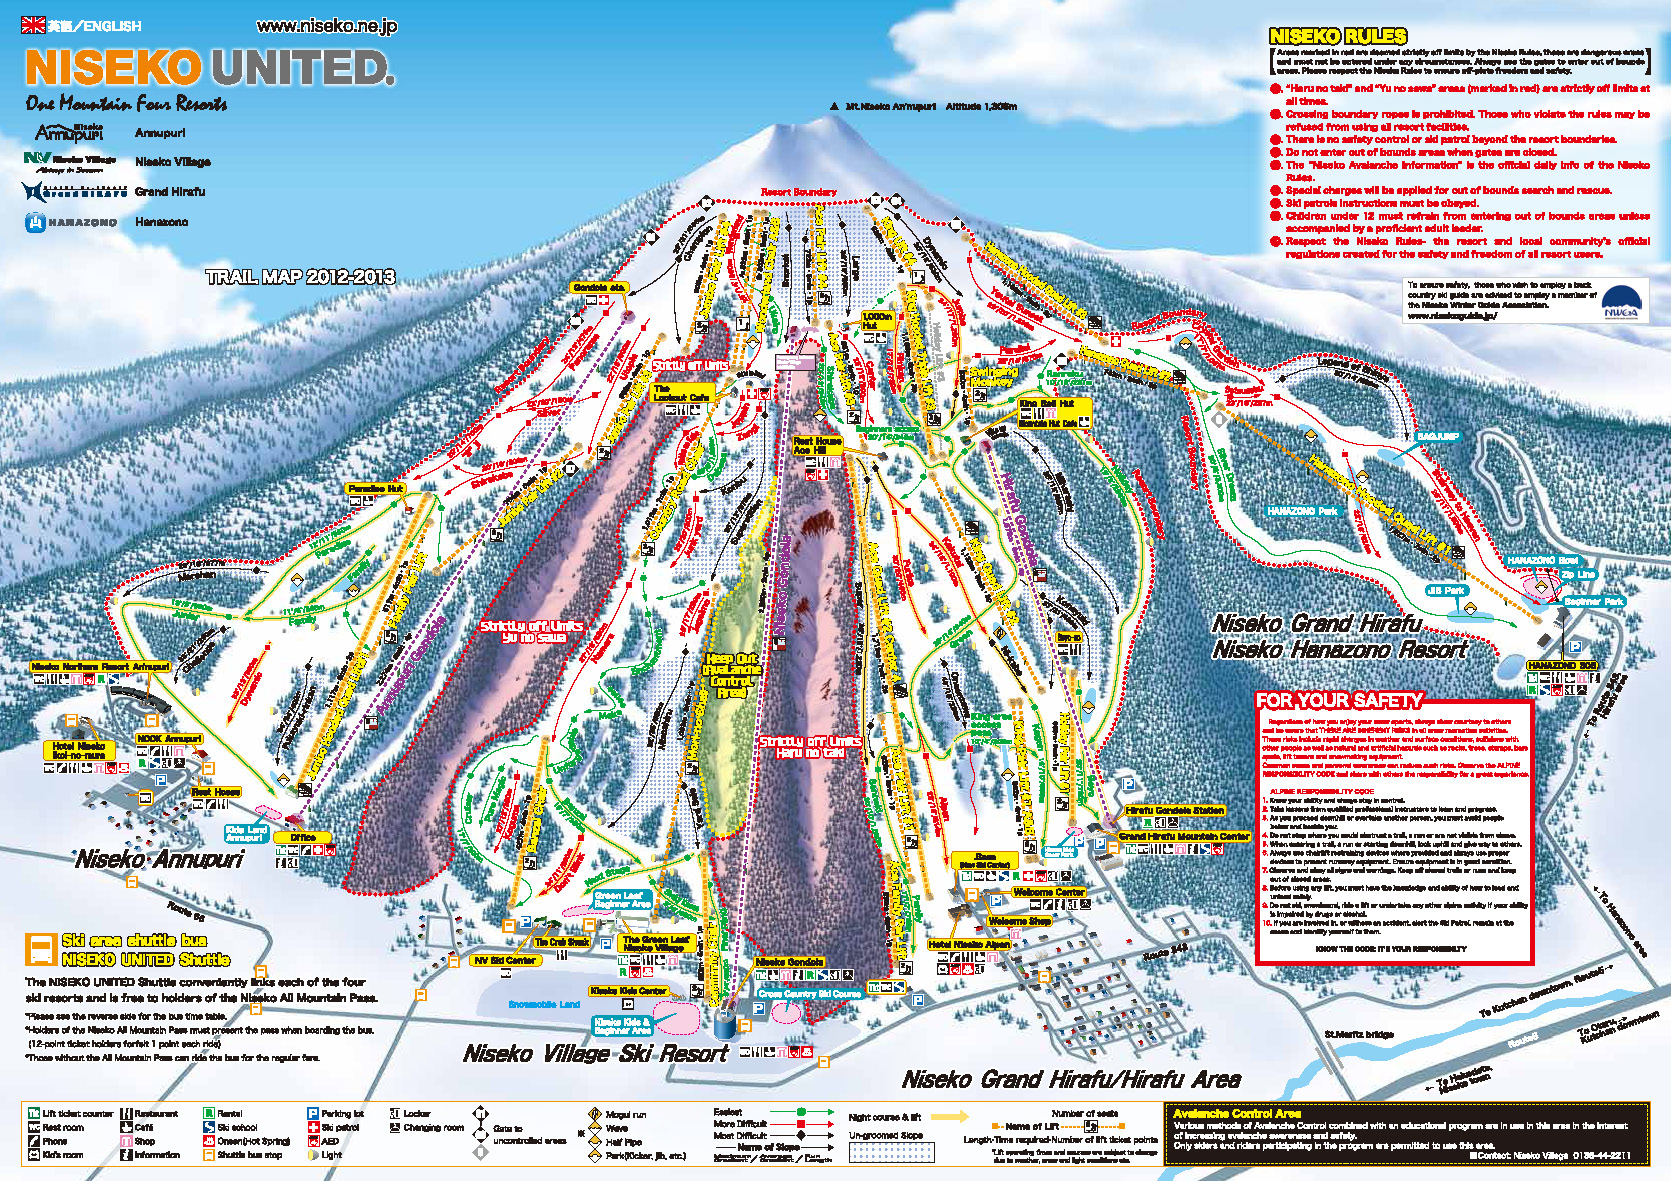 Niseko Hanazono Resort Piste / Trail Map